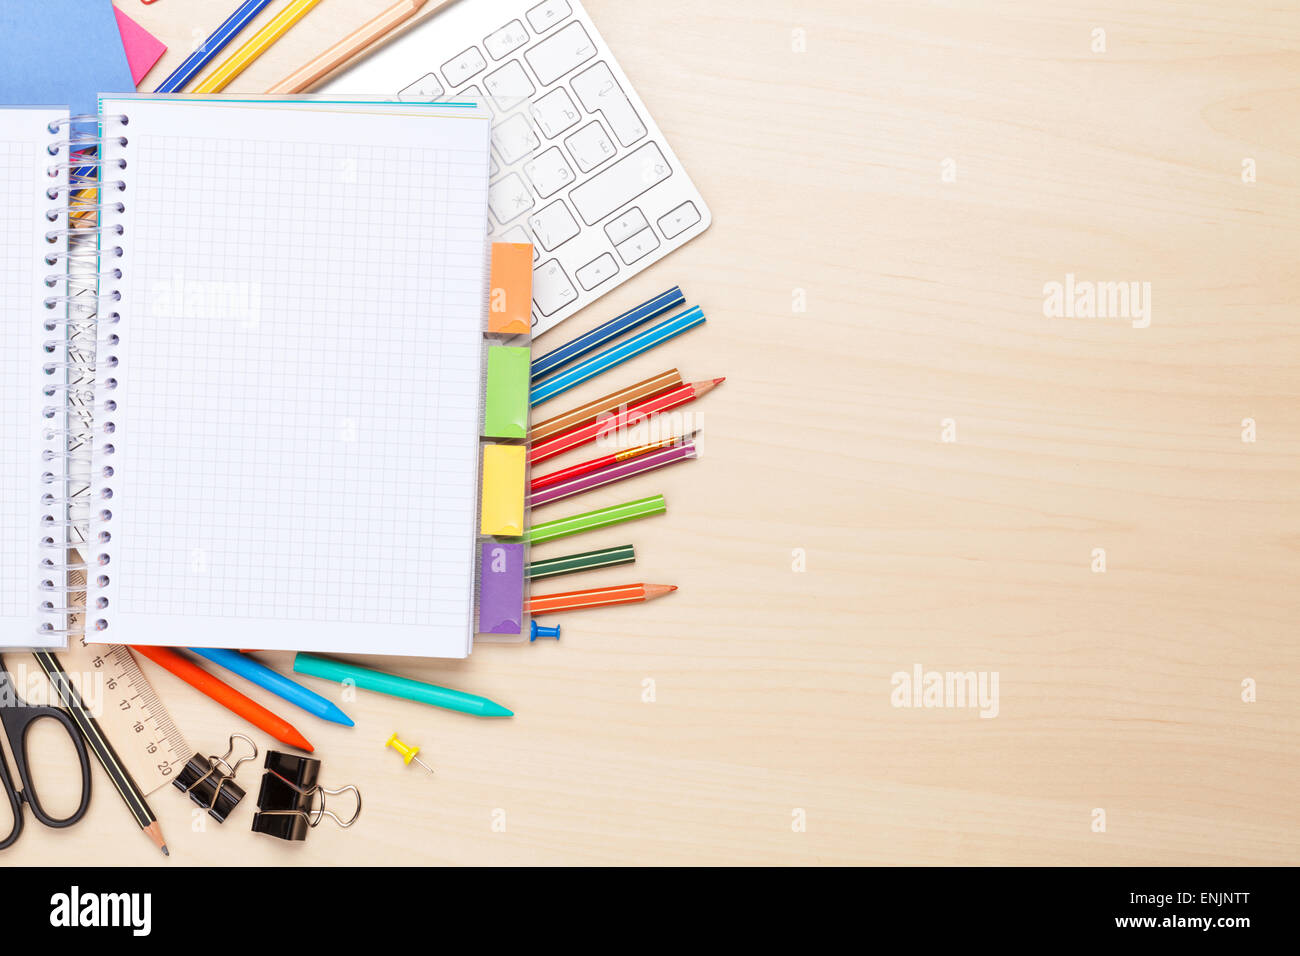 Blank notepad over school and office supplies on office table Top